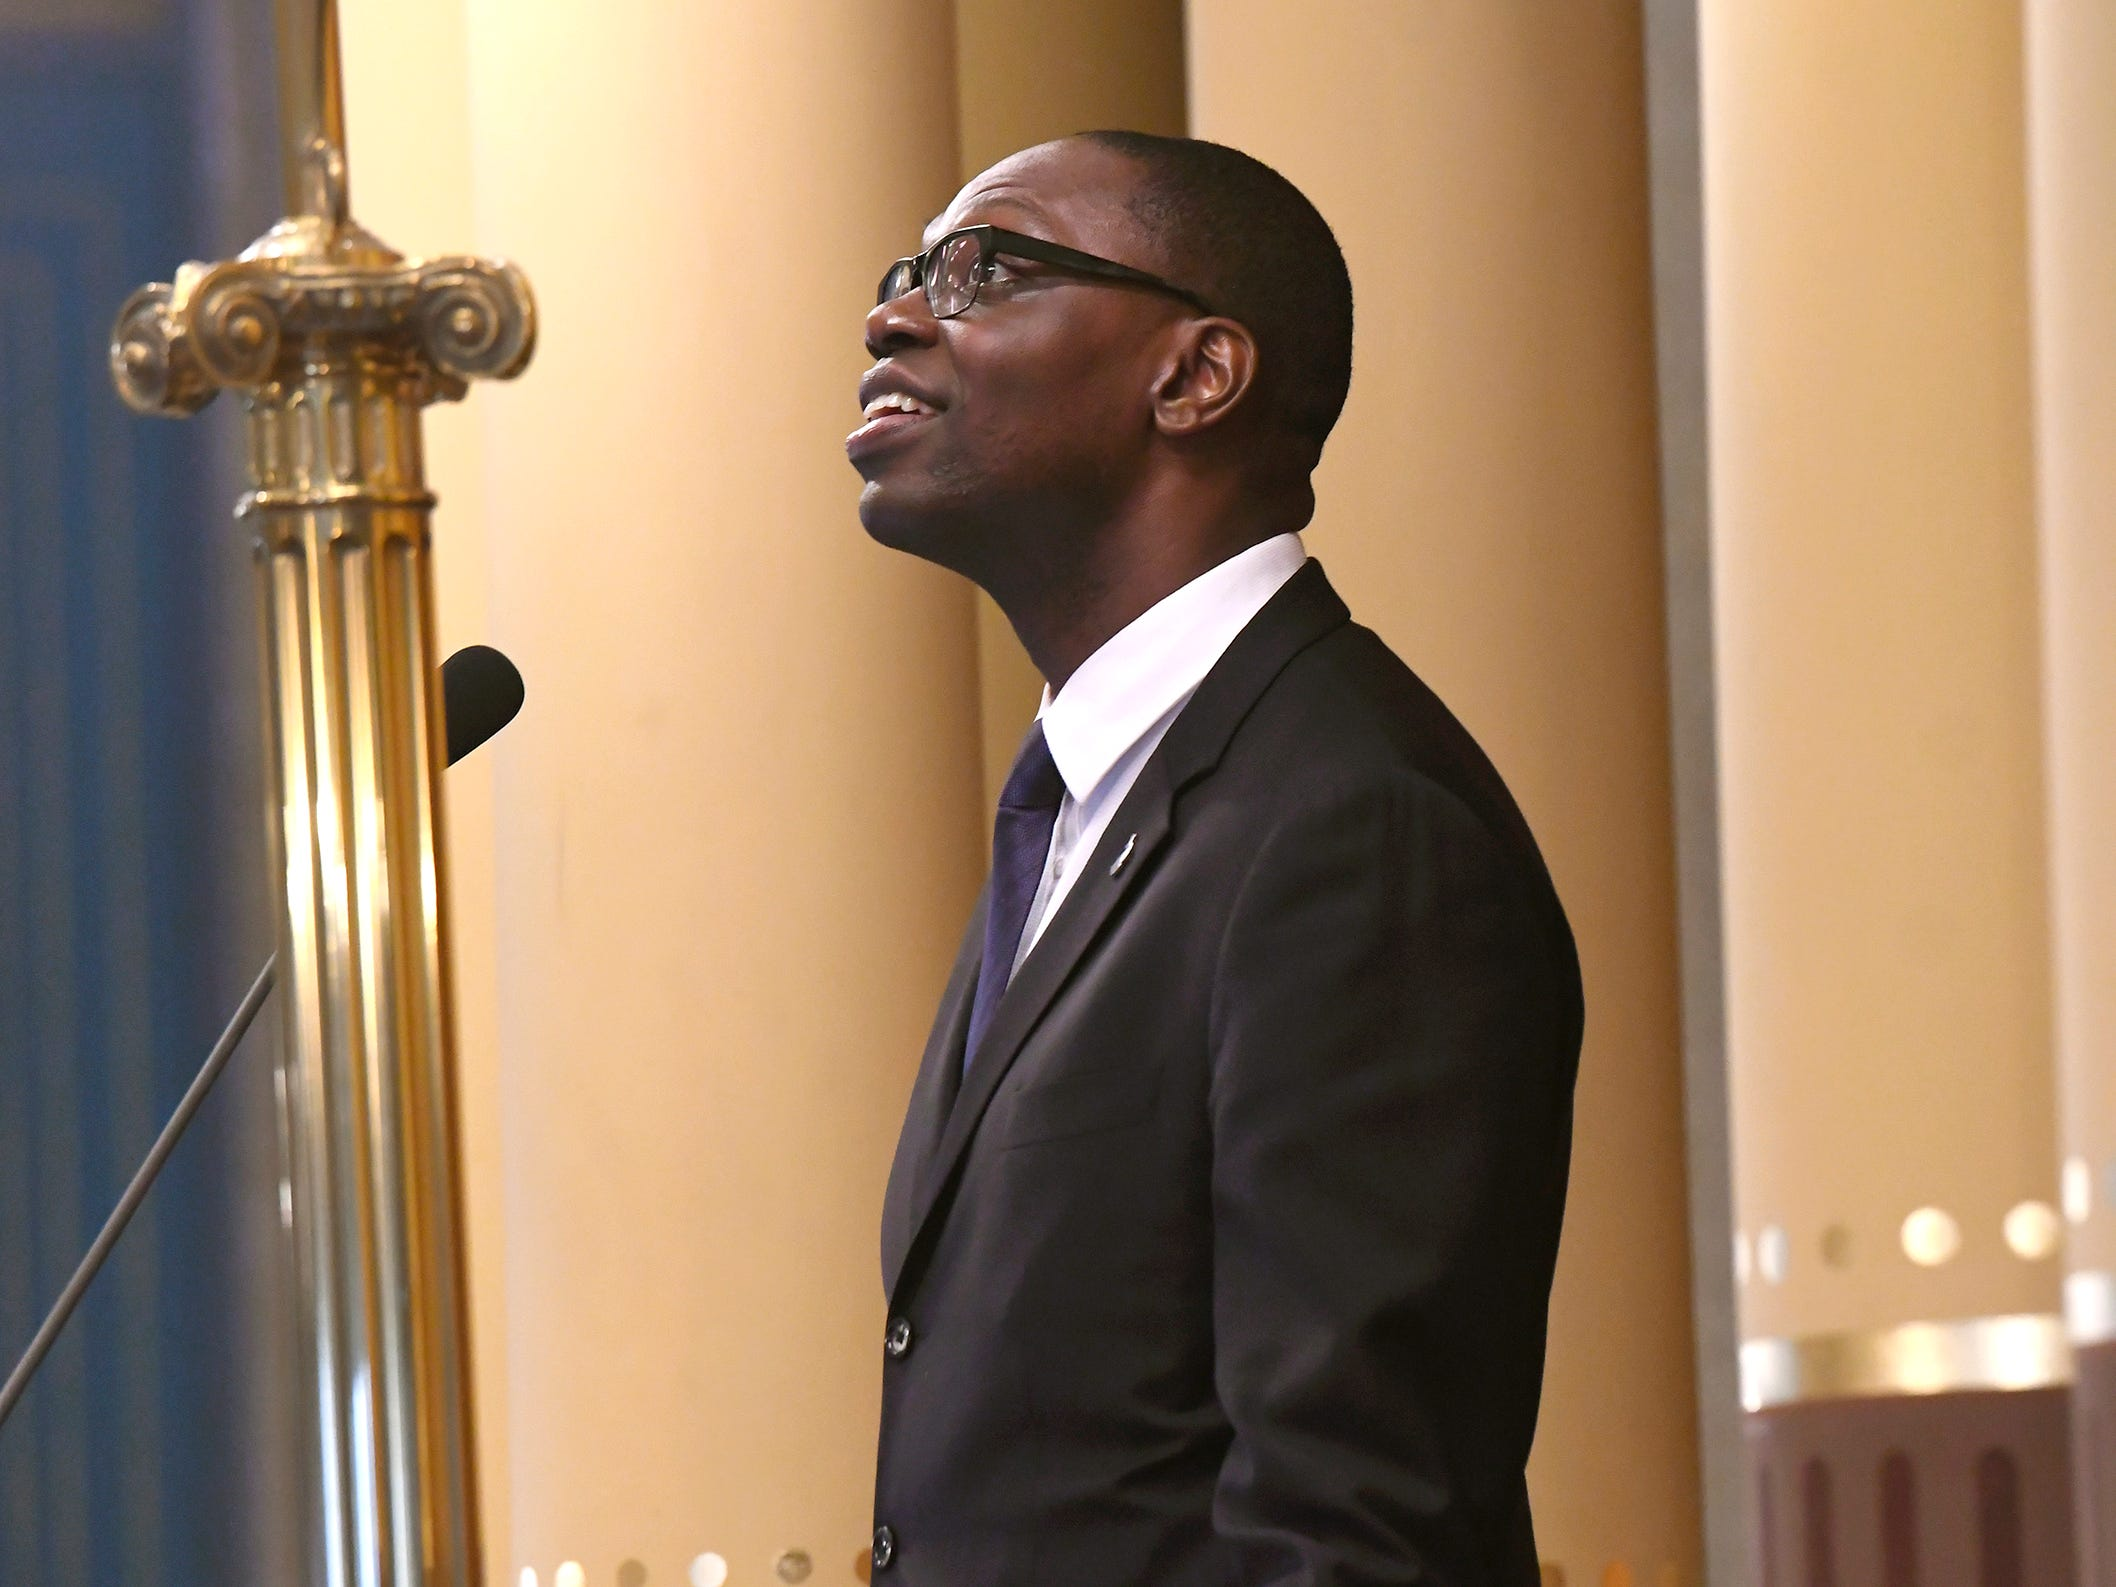 State of Michigan Lt. Gov. Garlin Gilchrist presides during opening ceremonies for the 100th Legislature.